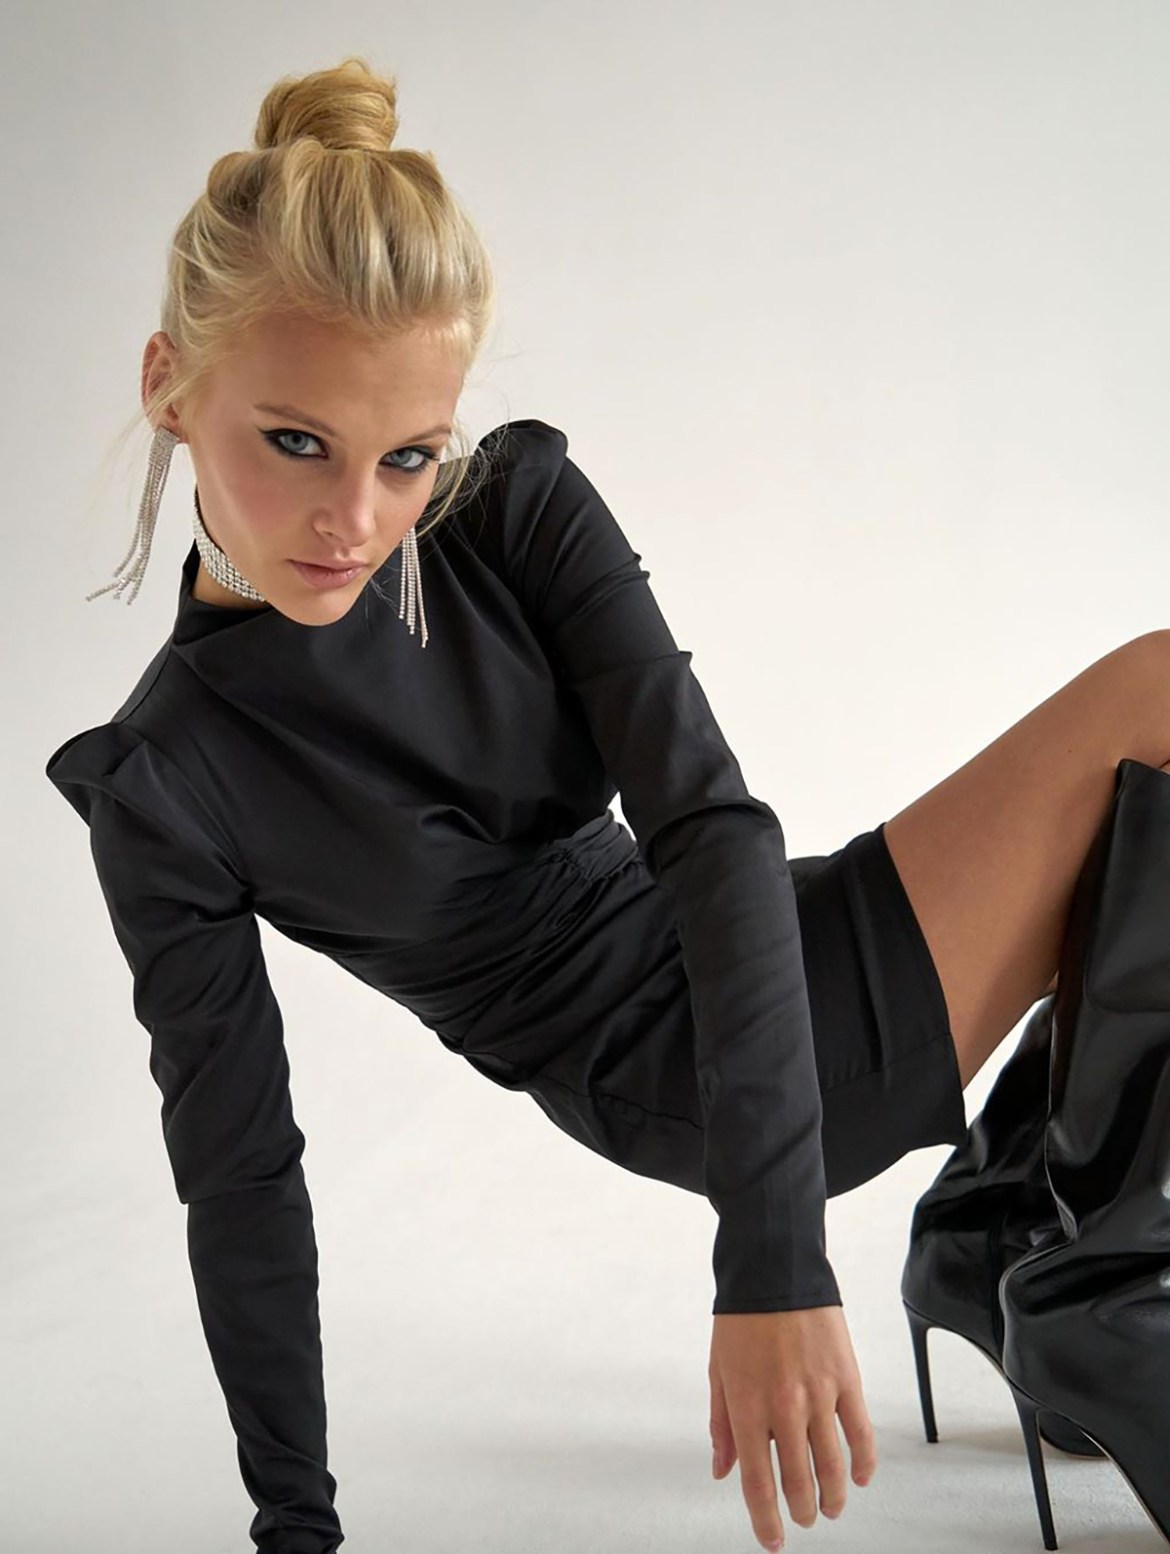 Model Ksenia Puntus, 21, was found in the center of Moscow with broken legs, ribs and undressed